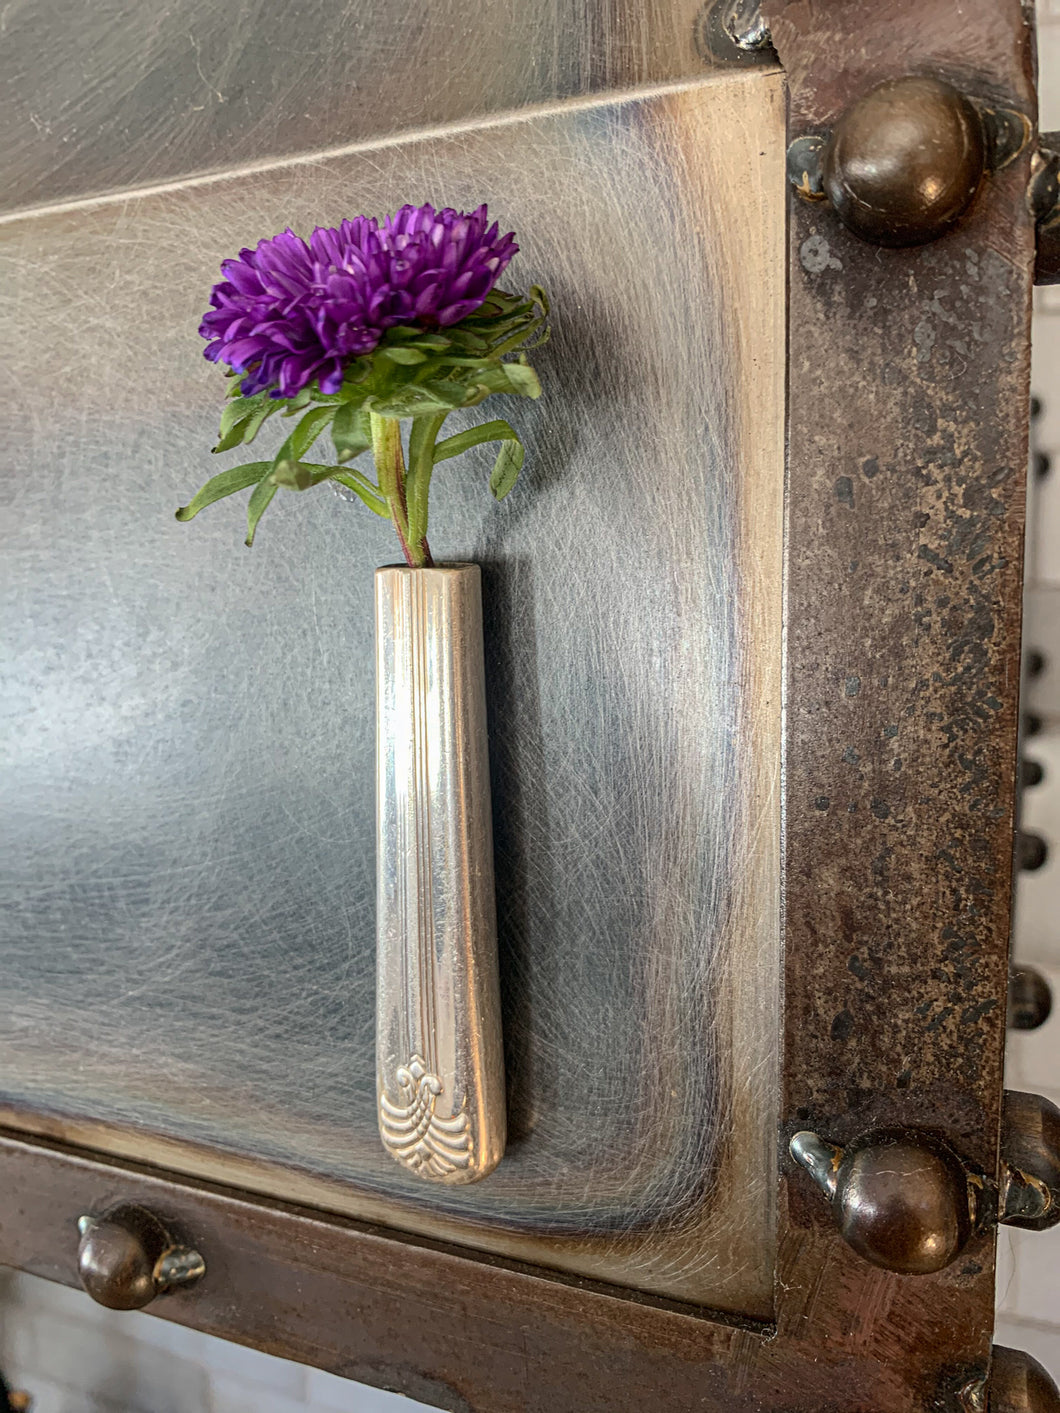 Magnetic Knife Handle Bud Vase